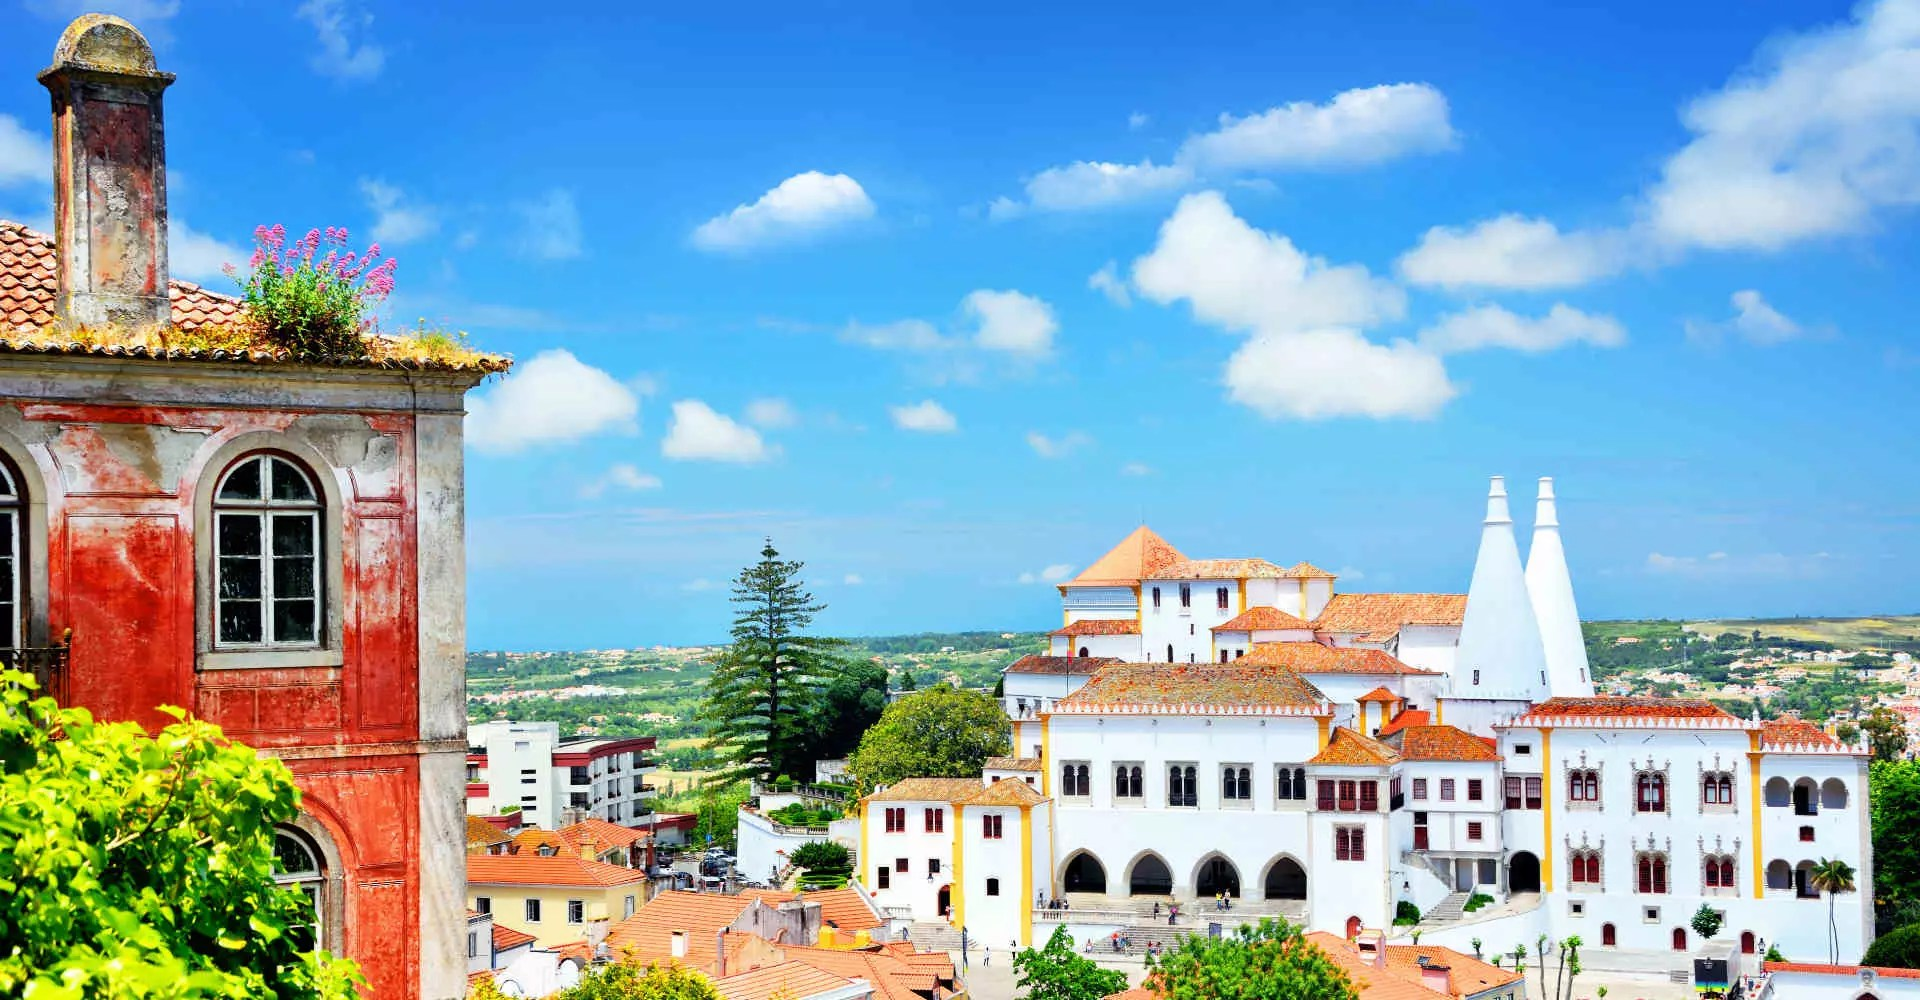 Hotel Tivoli Lisboa Emprego Sintra Portugal Hotels Special Offers And Deals At